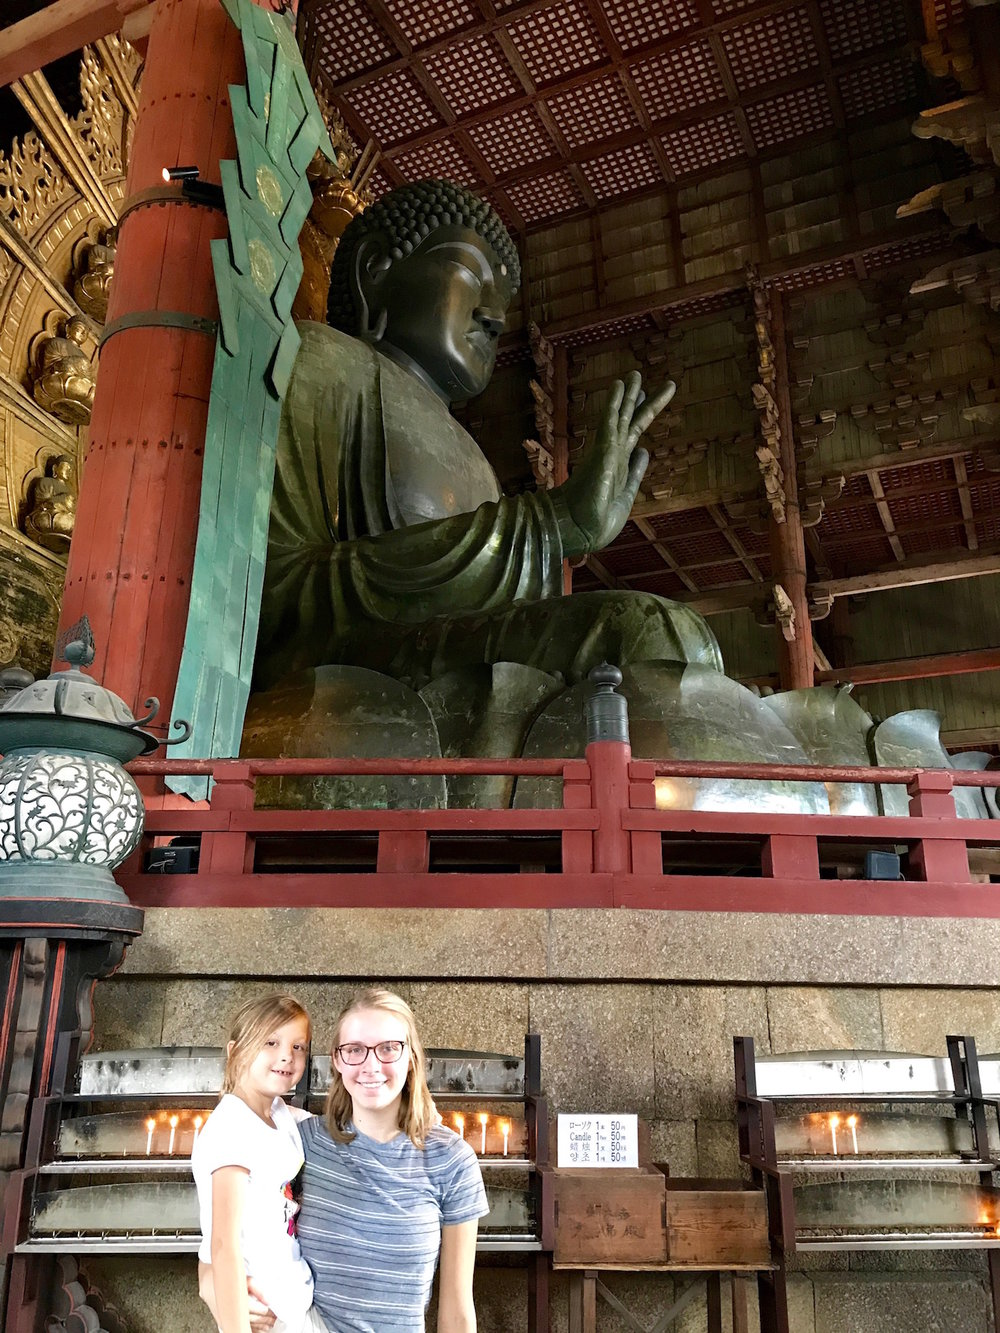 Autumn and Eden stand beside the Big Buddha. See Buddha's hand up there? Now picture a full-grown man standing in it, and that might help you see how large he is!